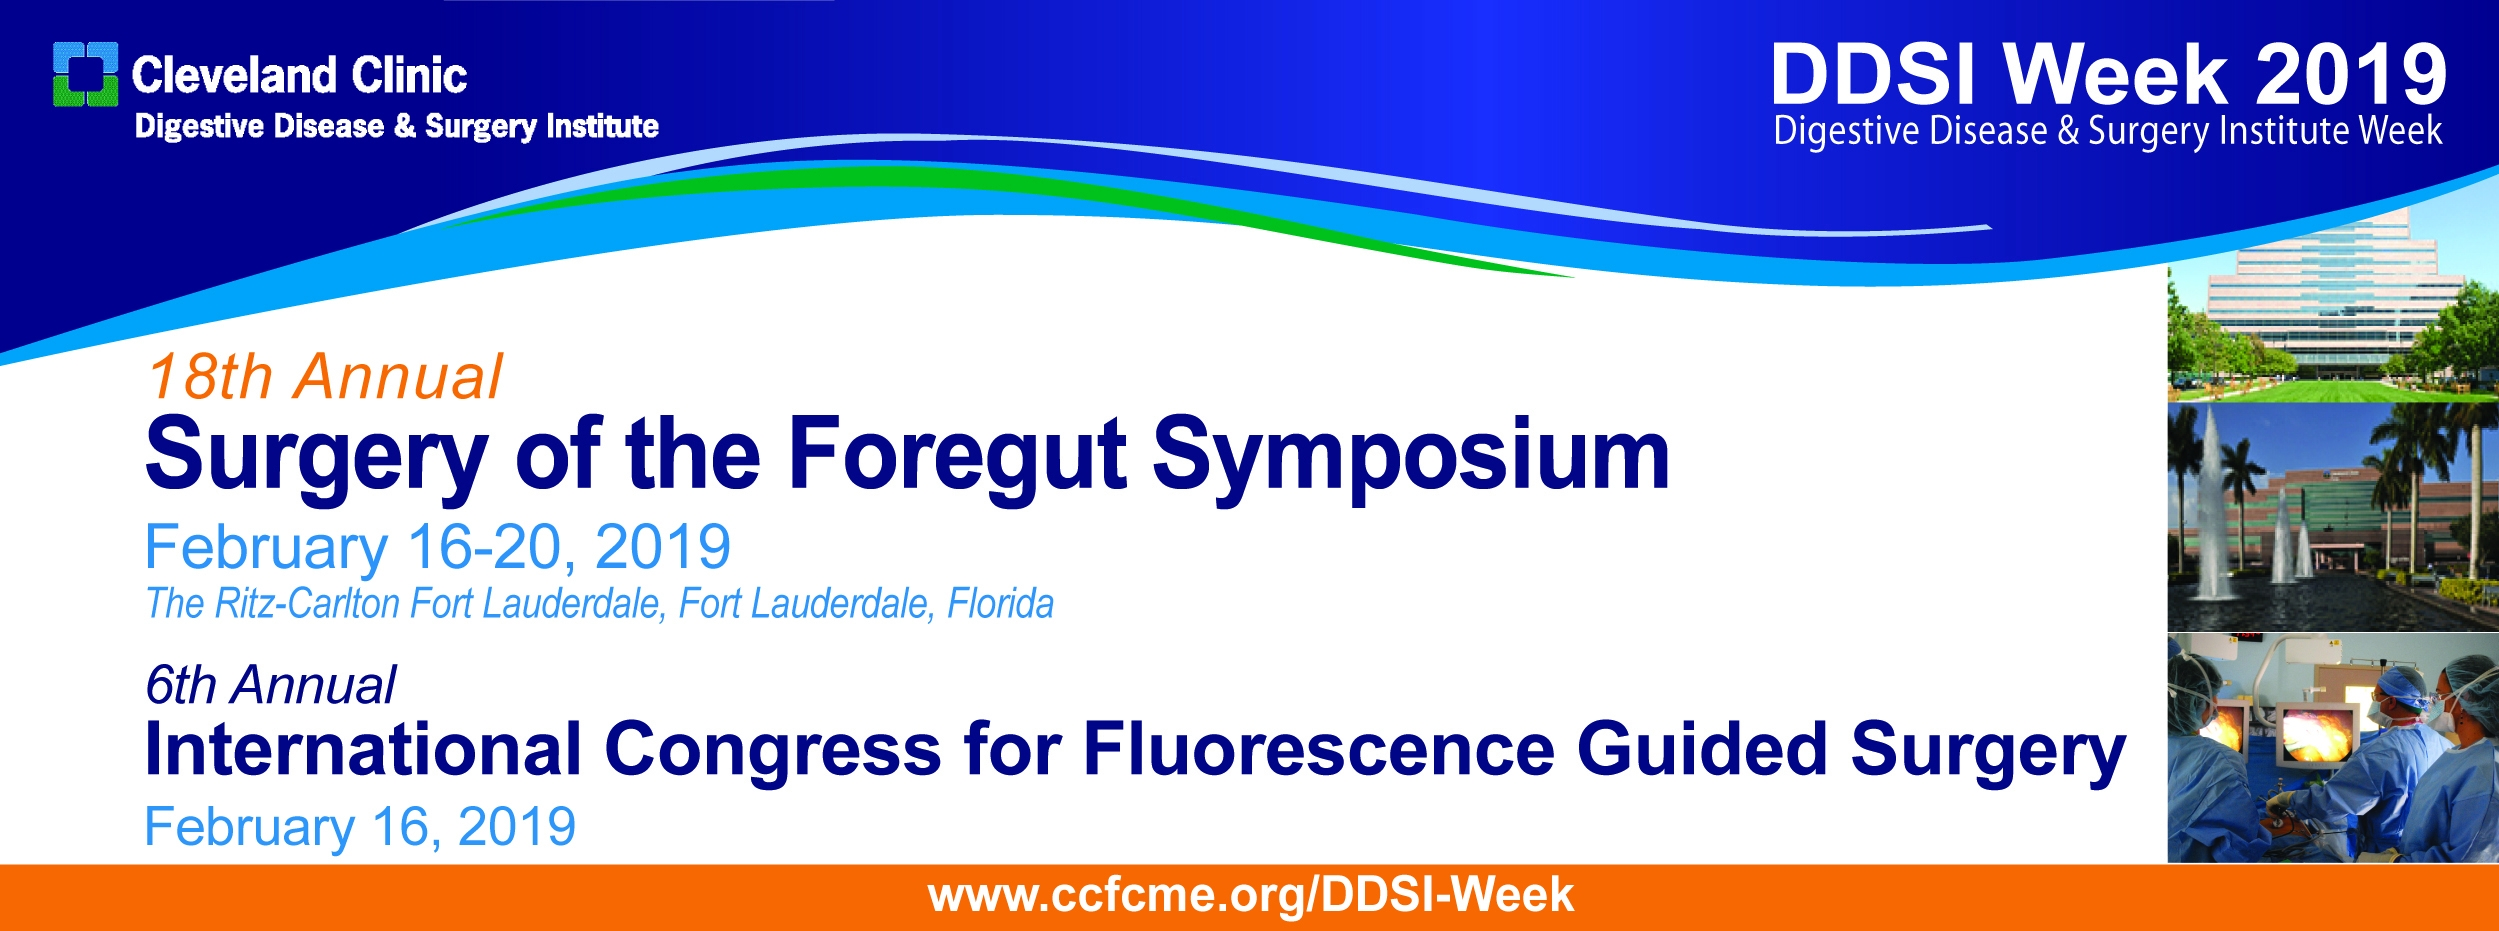 18th ANNUAL SURGERY OF THE FOREGUT SYMPOSIUM